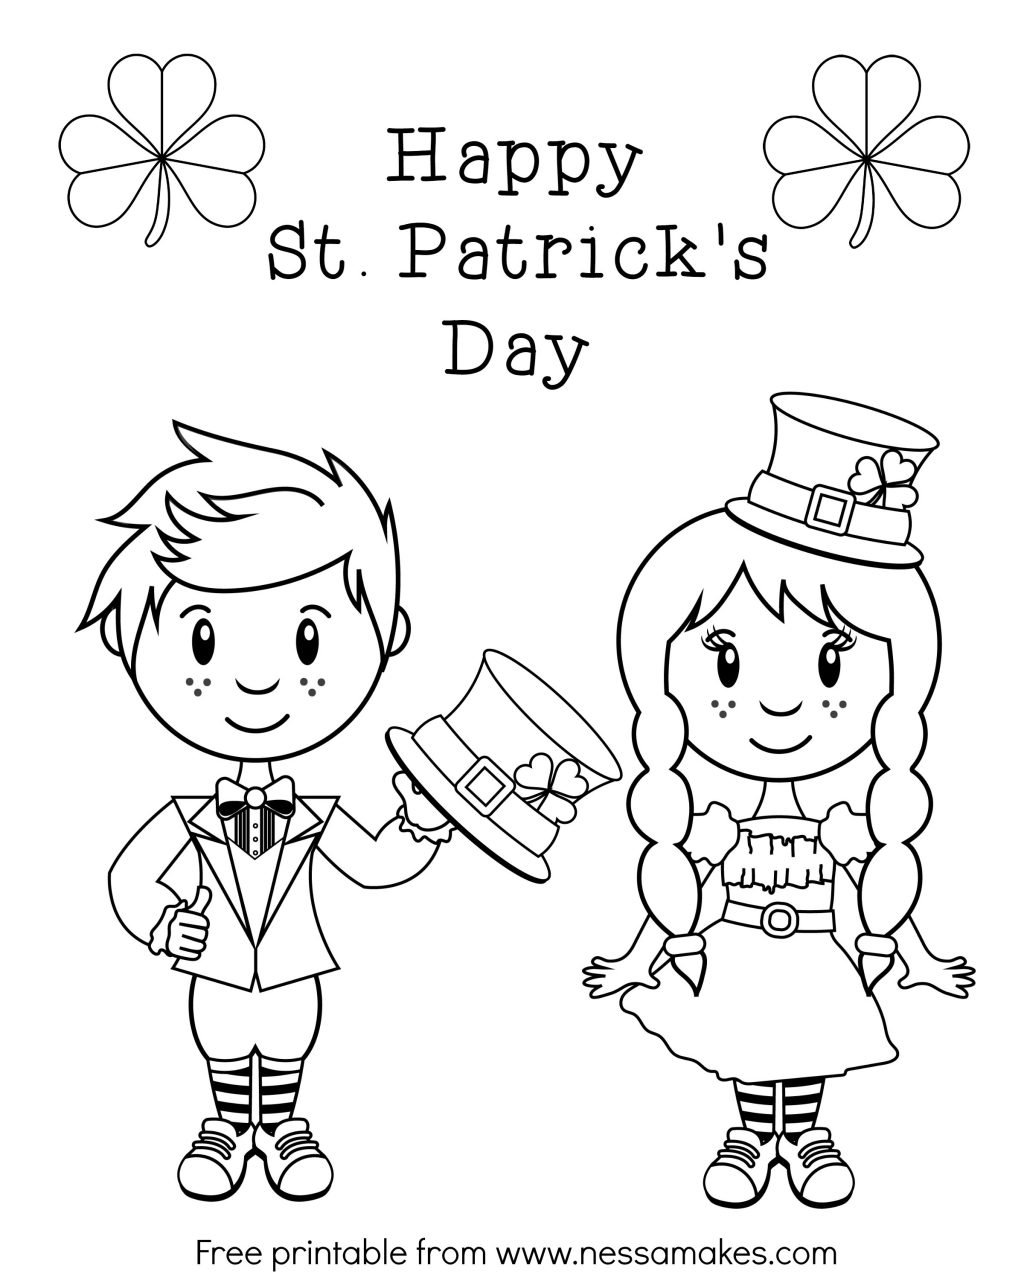 Coloring Pages ~ Coloring Pages Stks Sheets Free For Dayfree 45 - Free Printable Saint Patrick Coloring Pages